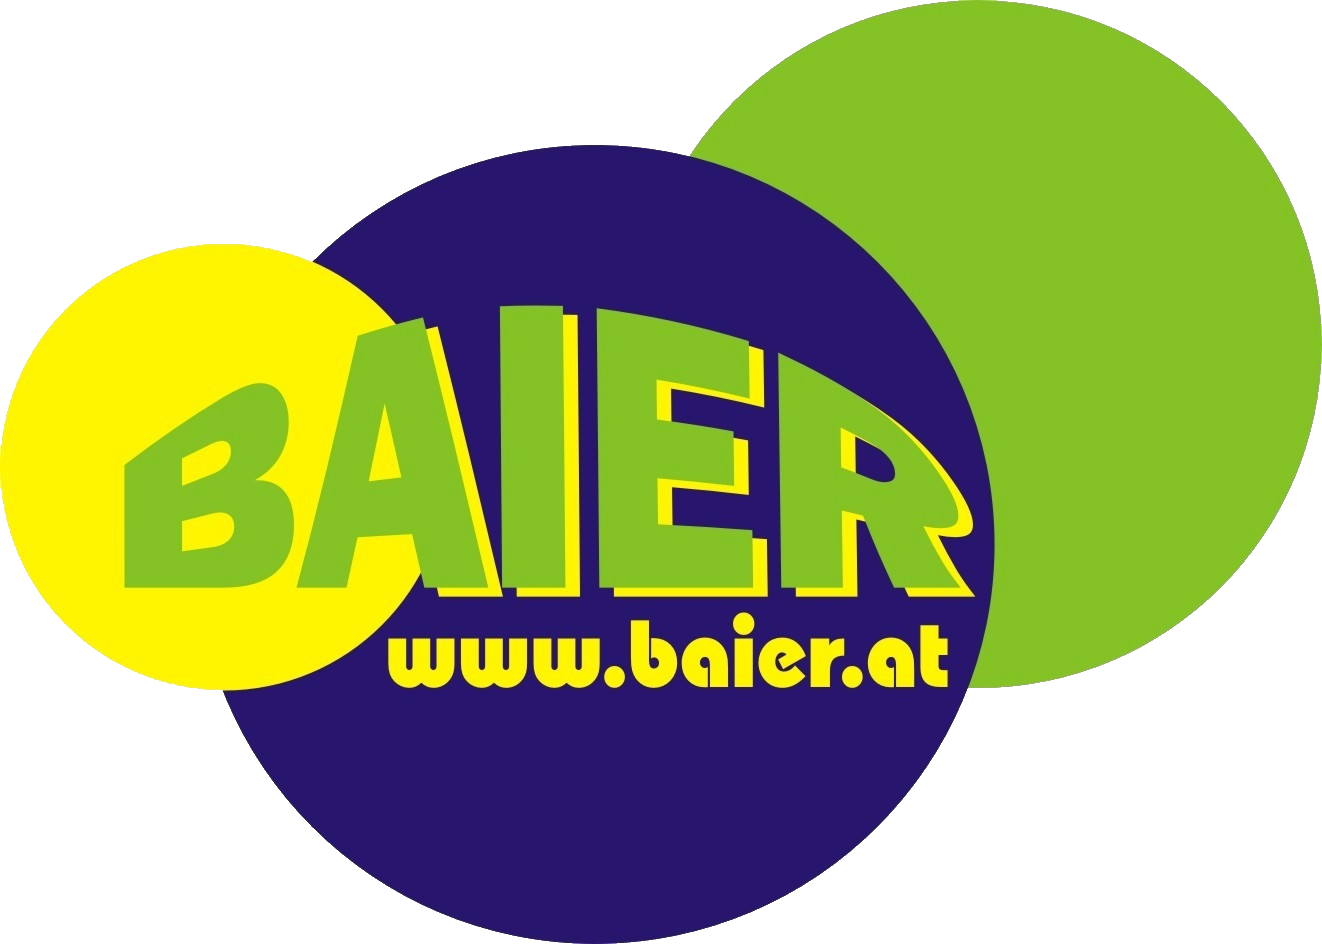 Baier Transport GmbH & Co KG